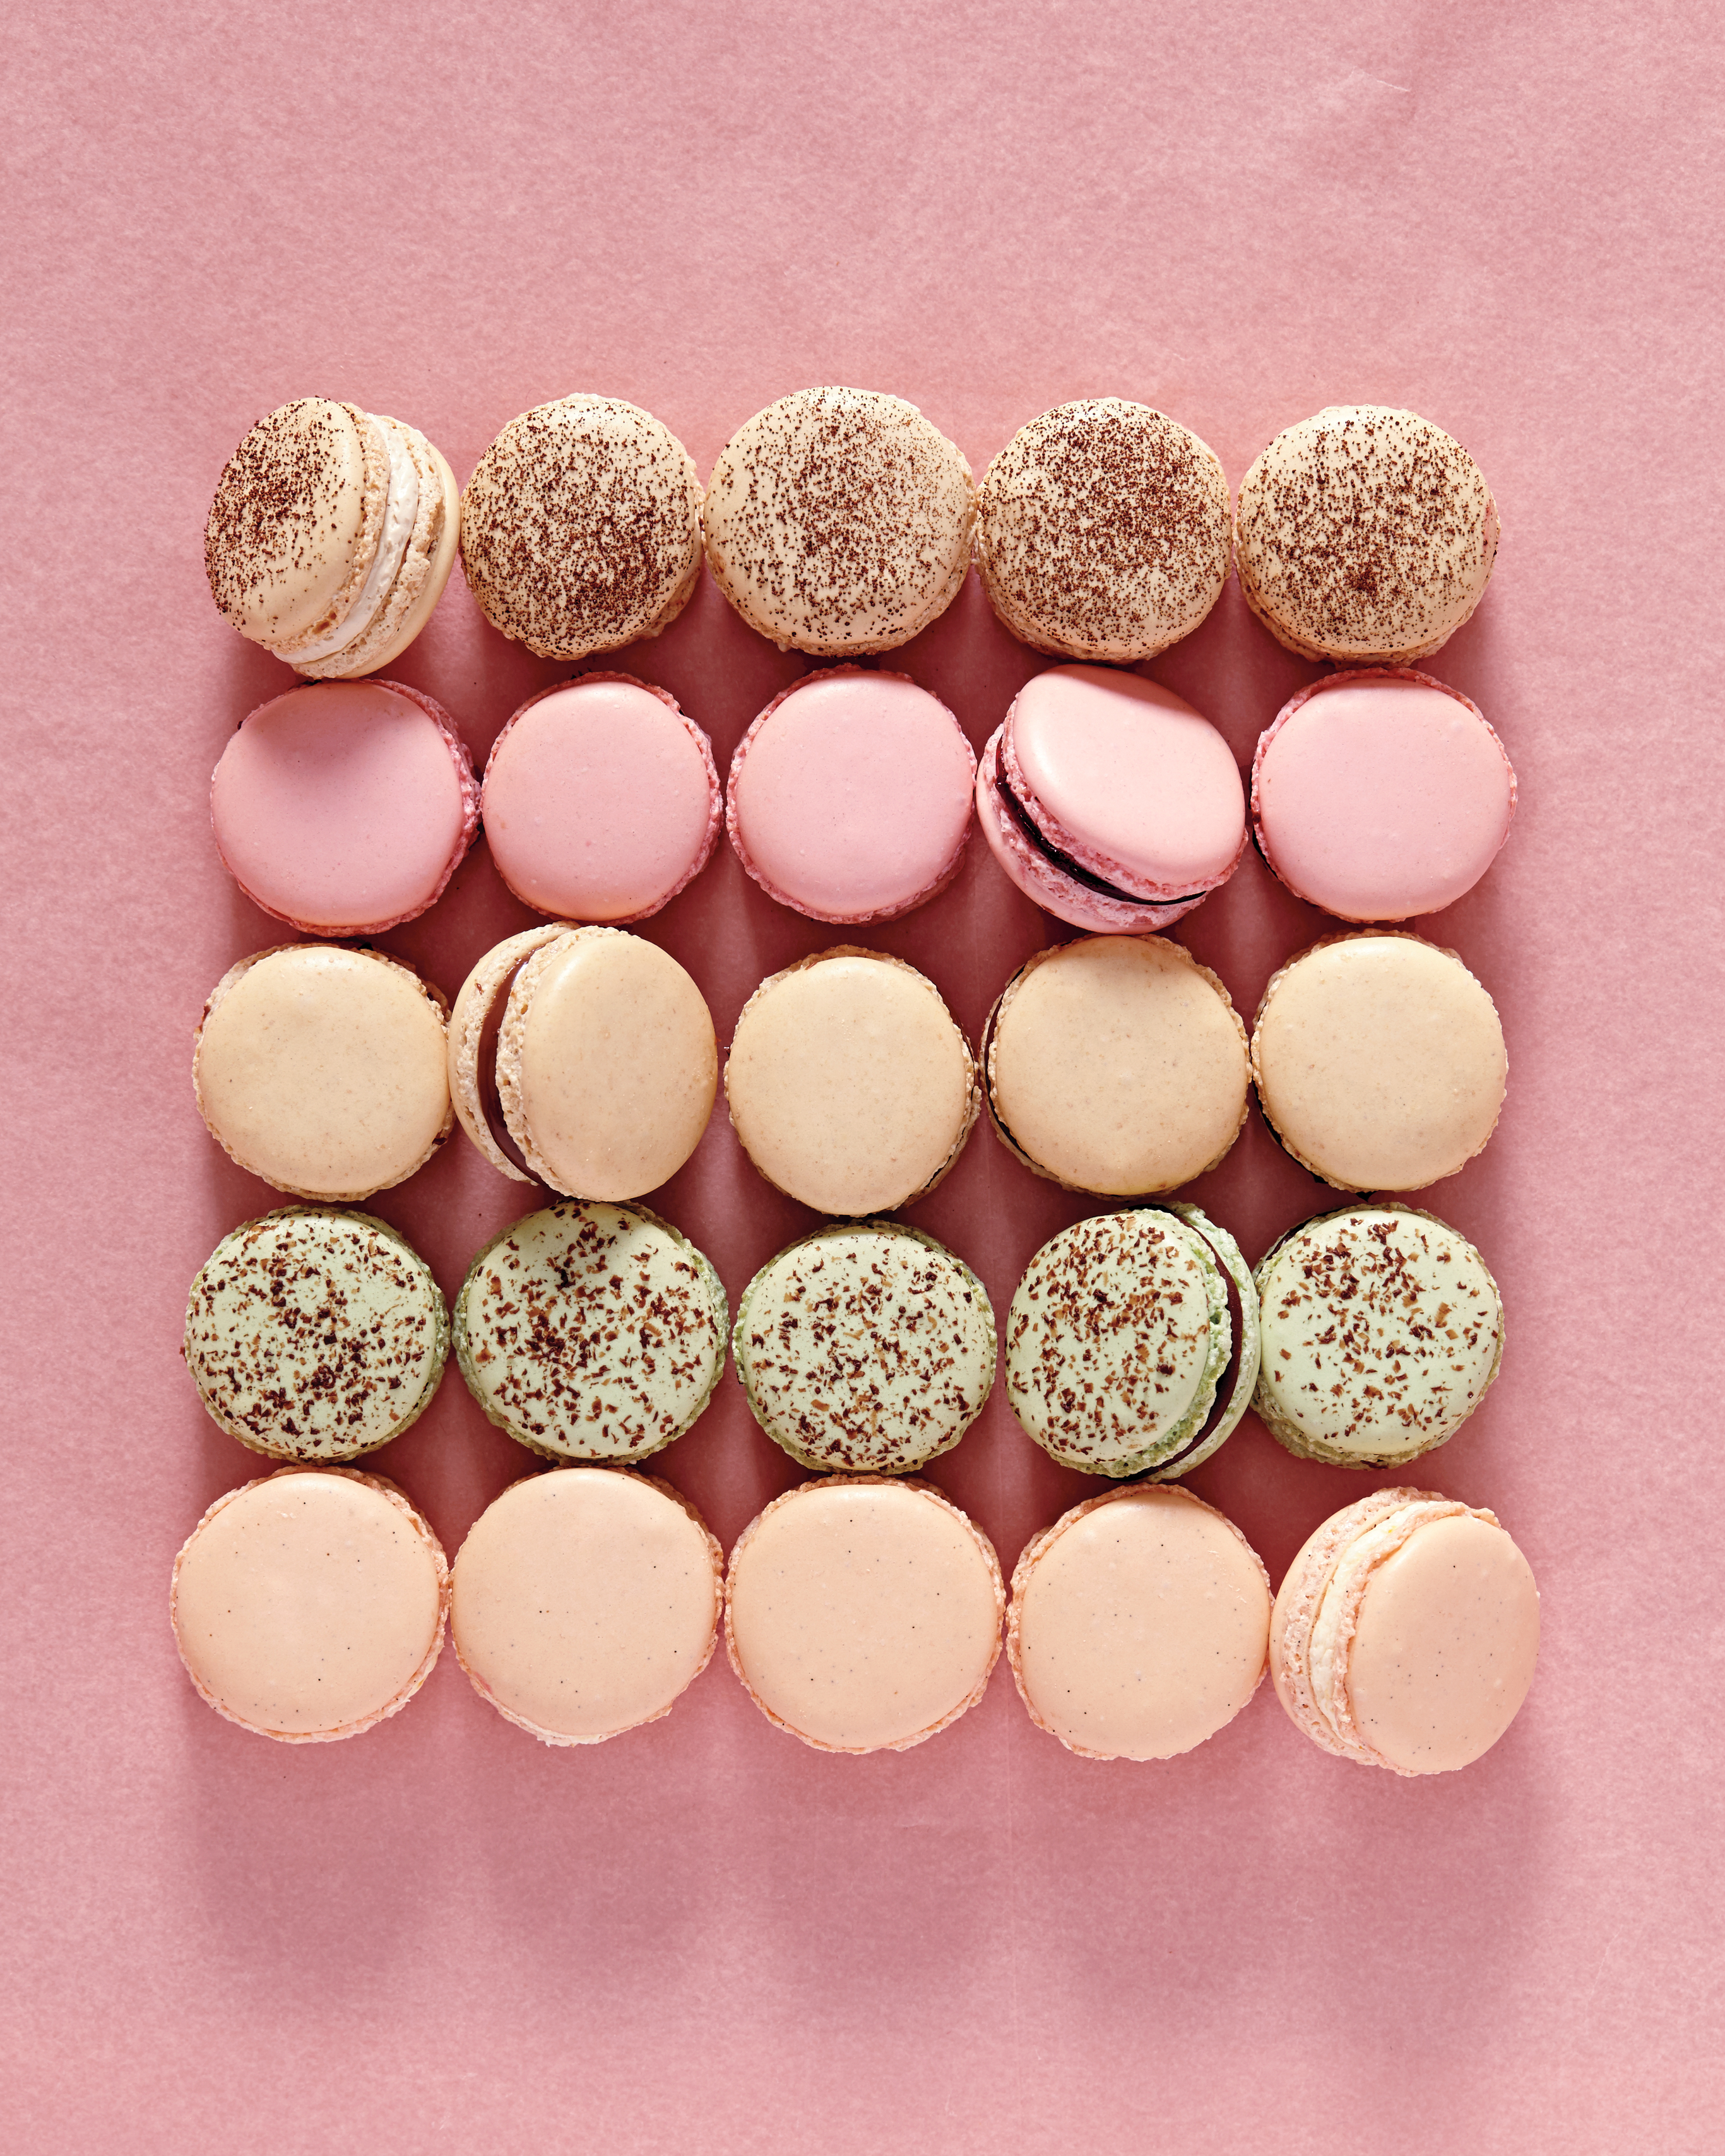 French Macaron Recipes That Are Truly Fantastique!